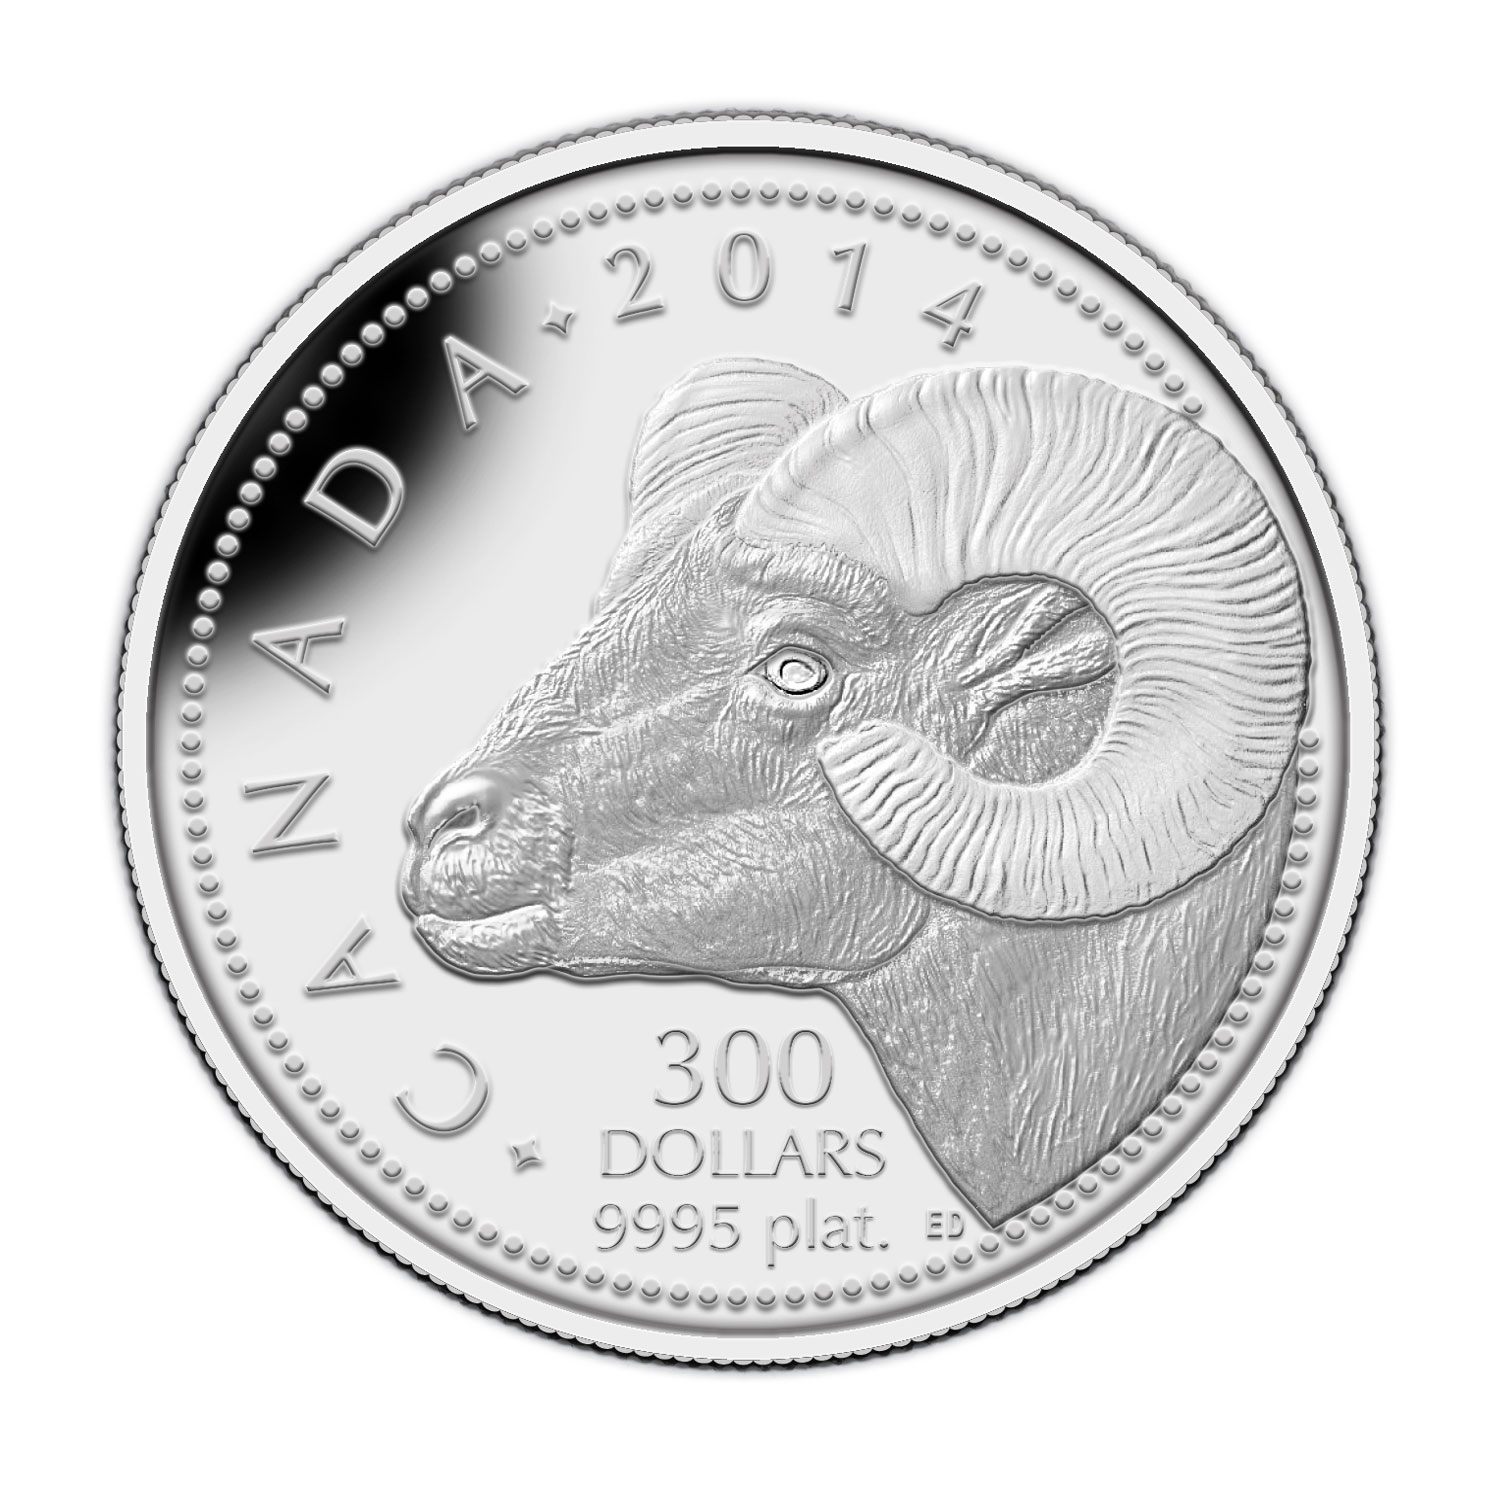 2014 Canada 1 oz Proof Platinum $300 Rocky Mountain Bighorn Sheep